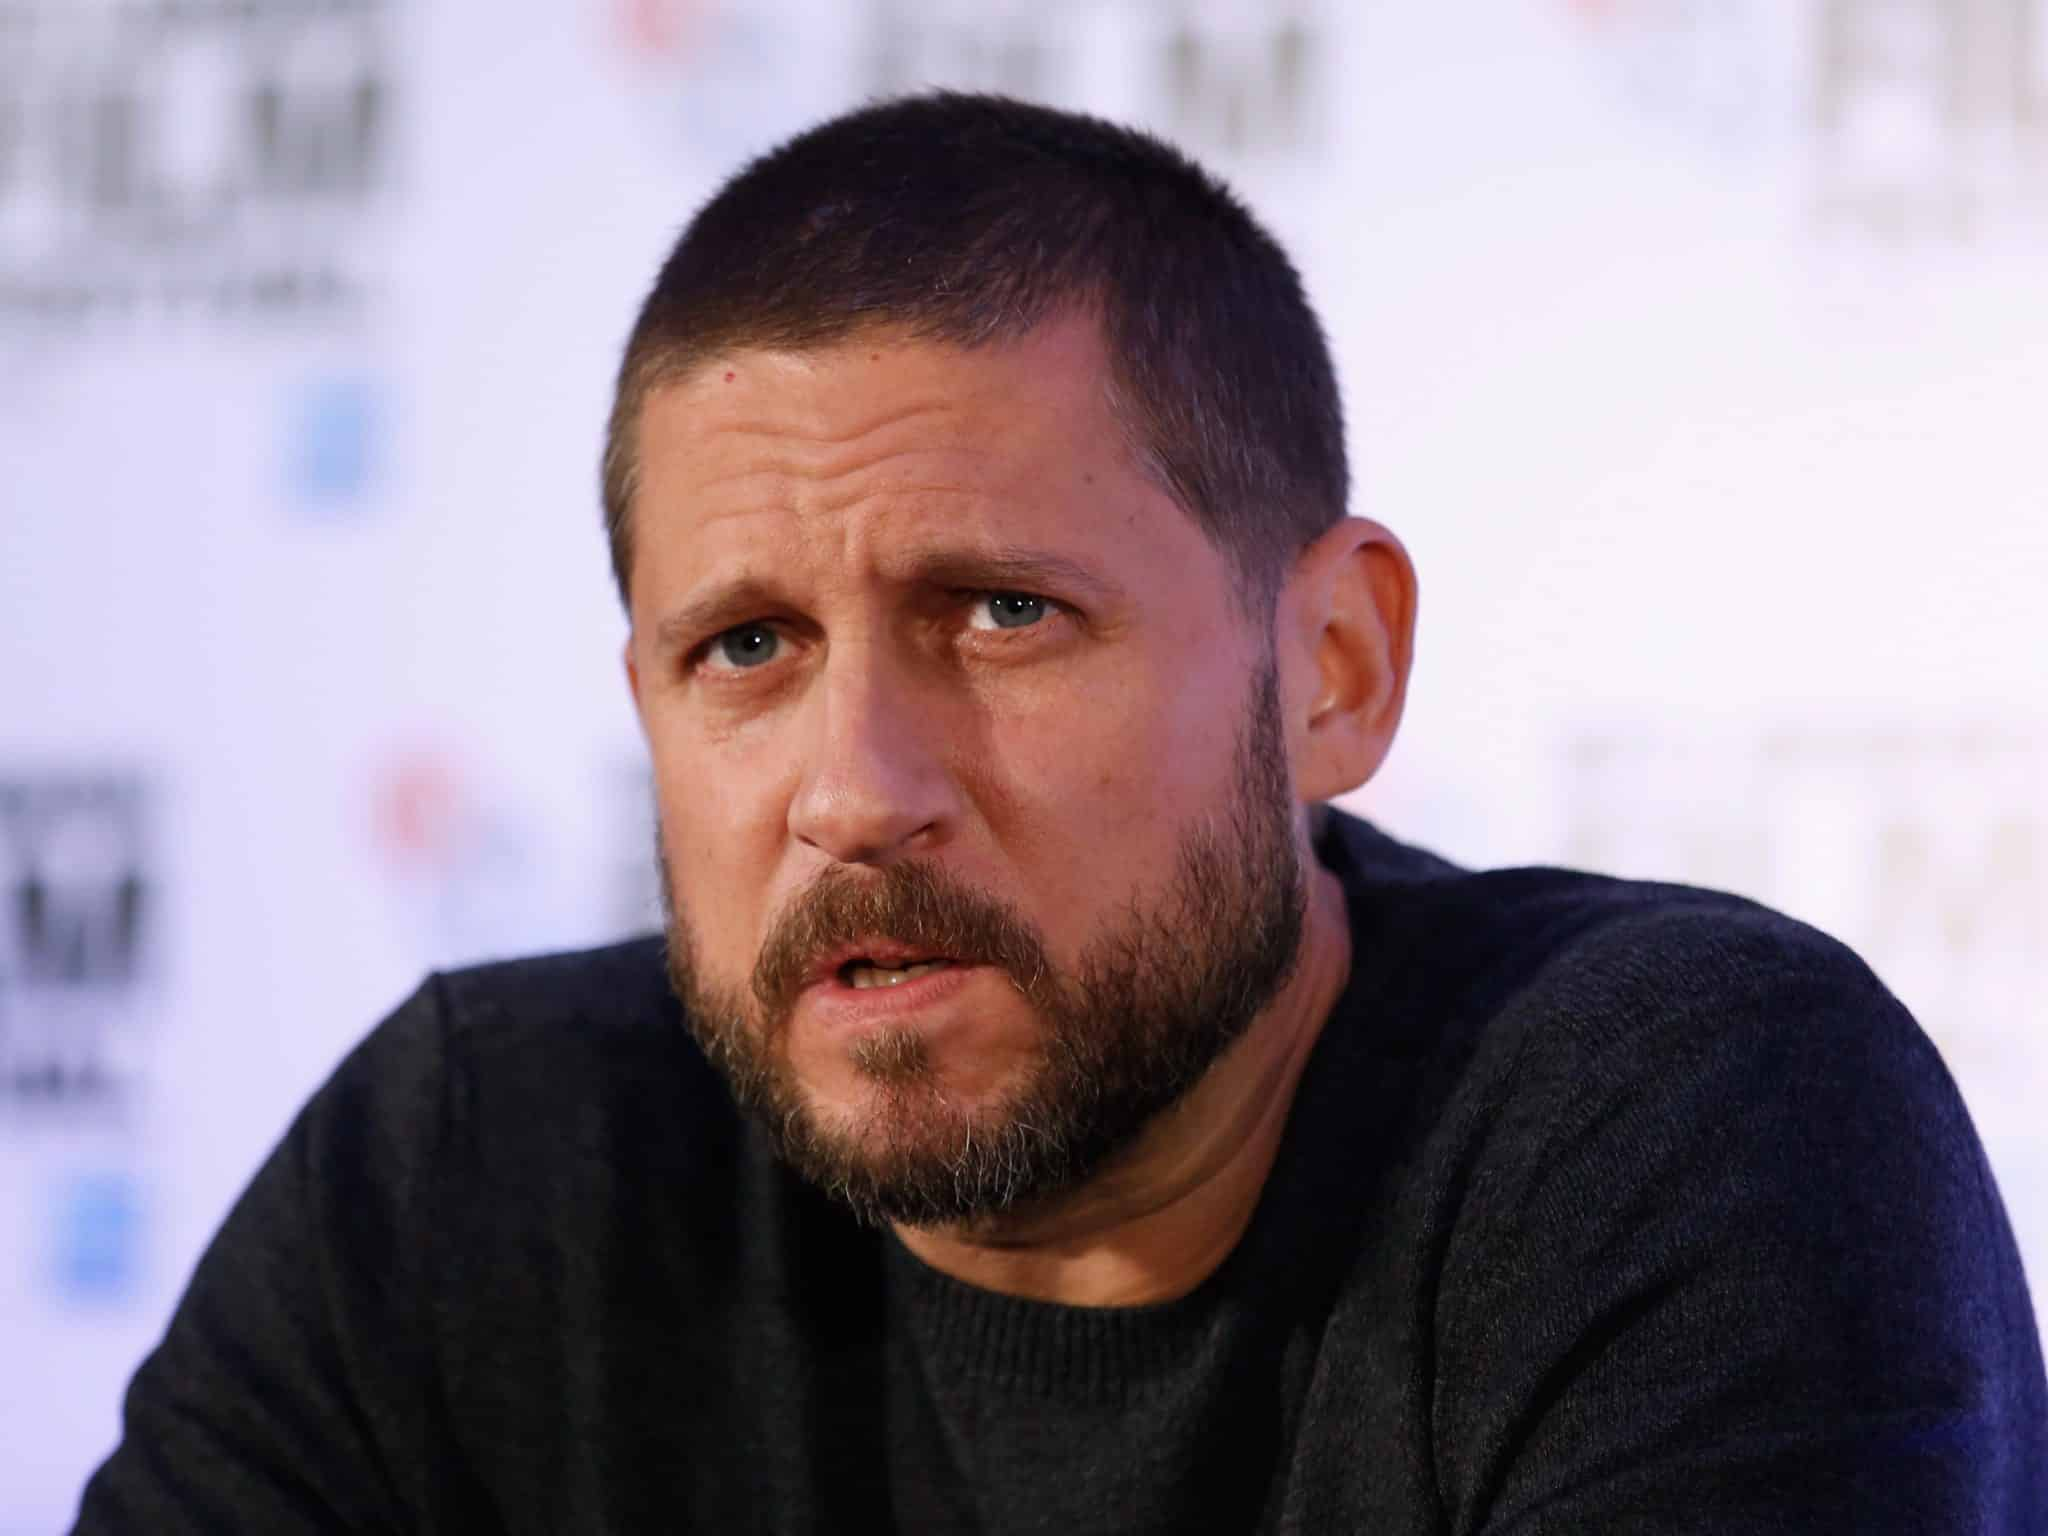 meet-david-ayer-the-hard-edged-director-of-suicide-squad